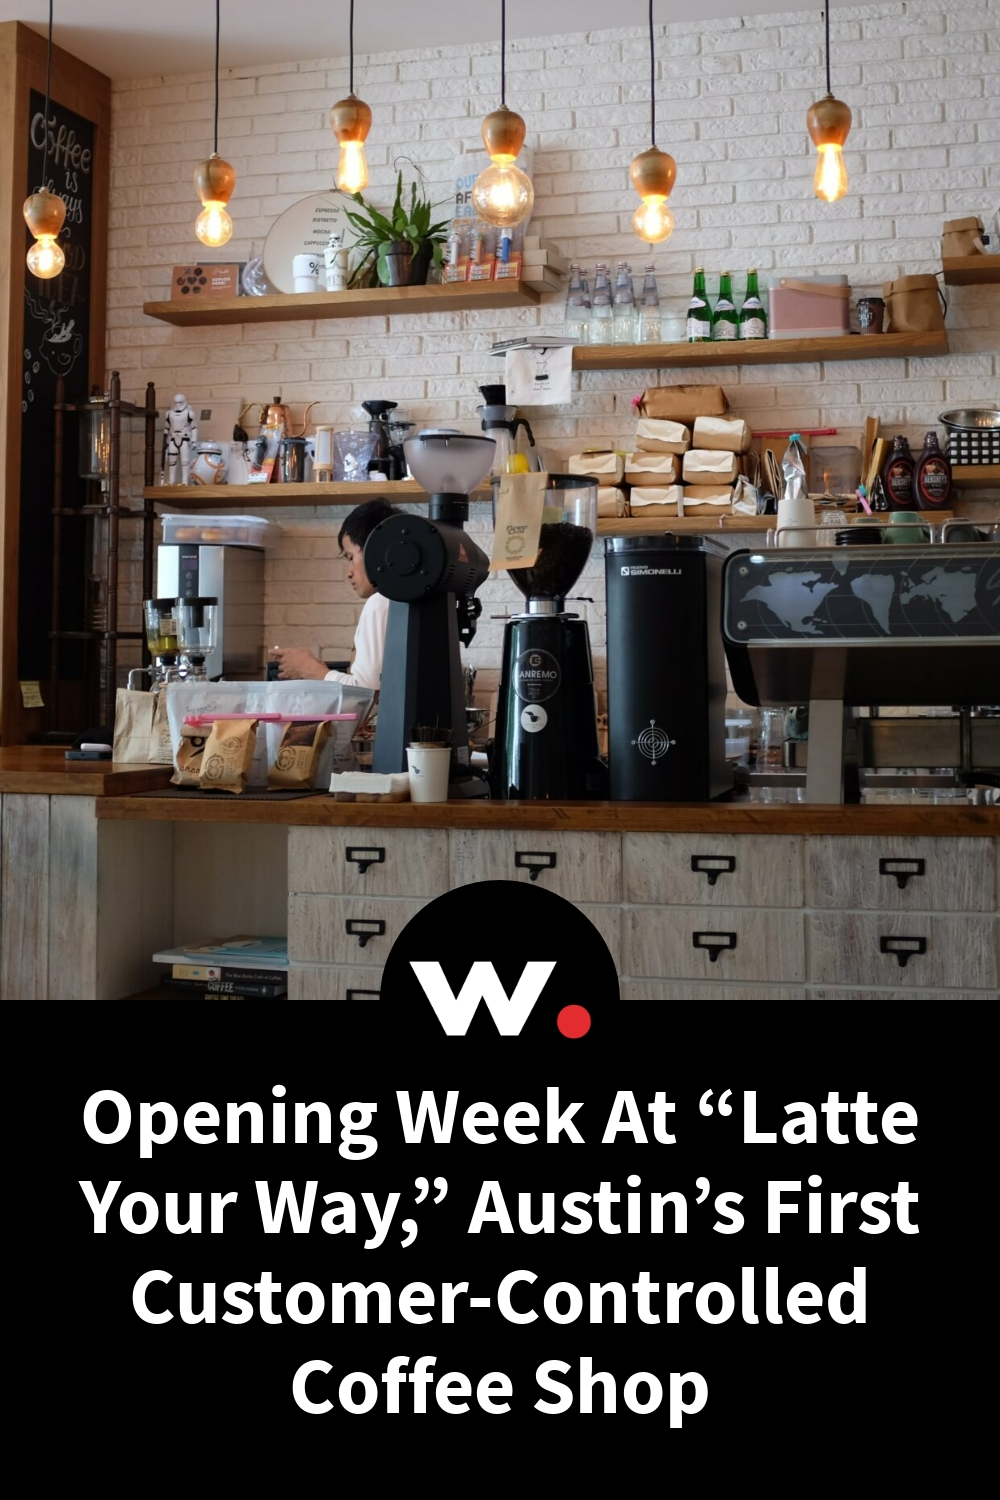 """Opening Week At """"Latte Your Way,"""" Austin's First Customer-Controlled Coffee Shop"""